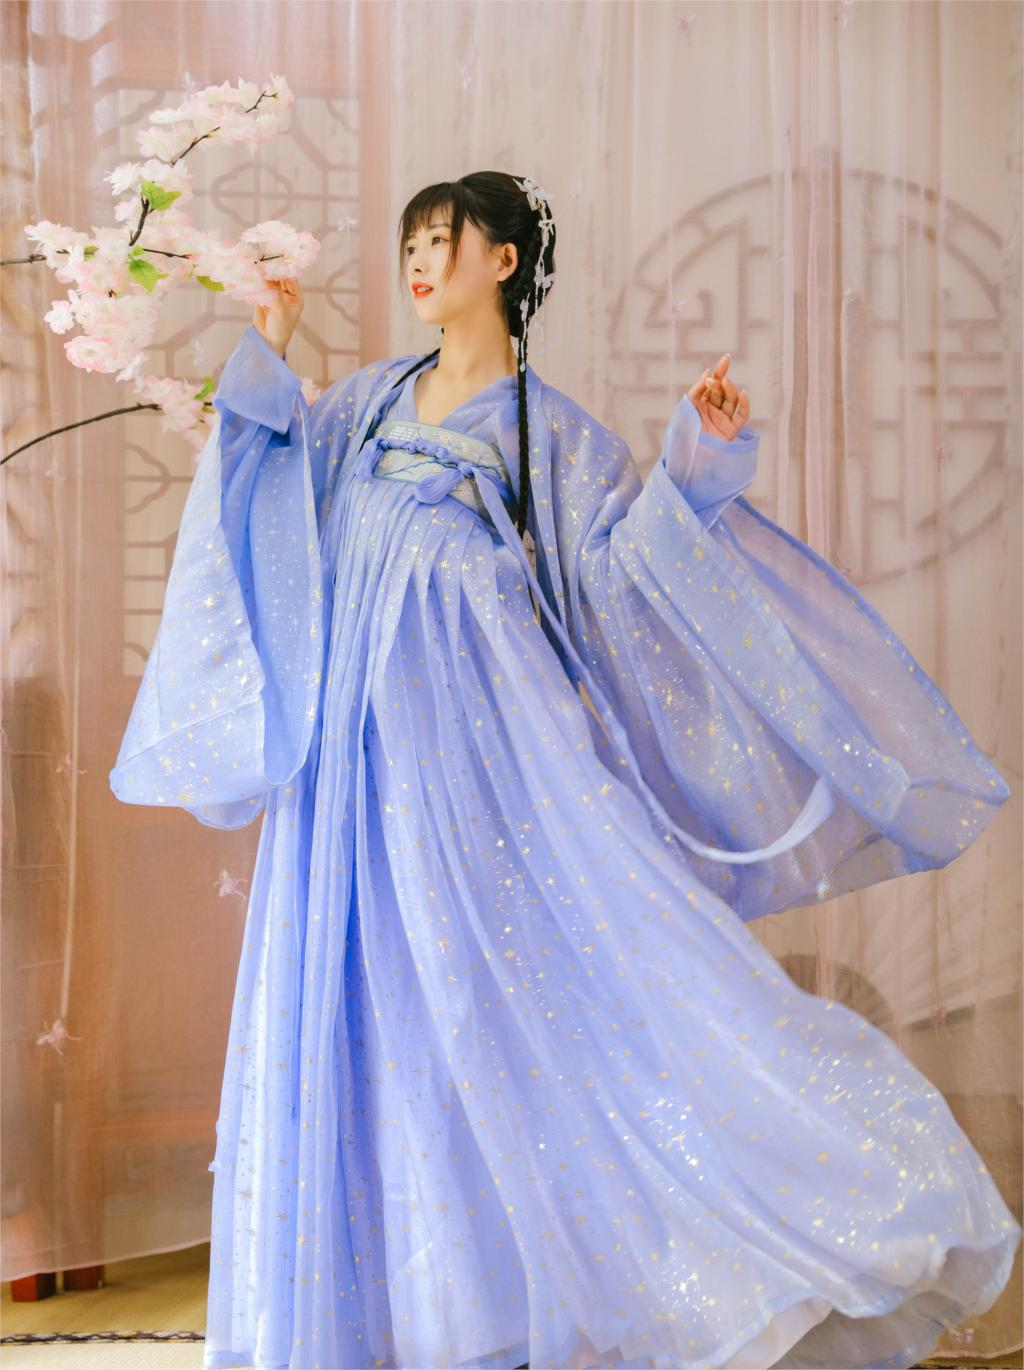 2020 Hanfu Coat Women Embroidery Shiny Navy Cloak Chinese Traditional Ancient Costume Chinese Style Coat Sunscreen Cardigan